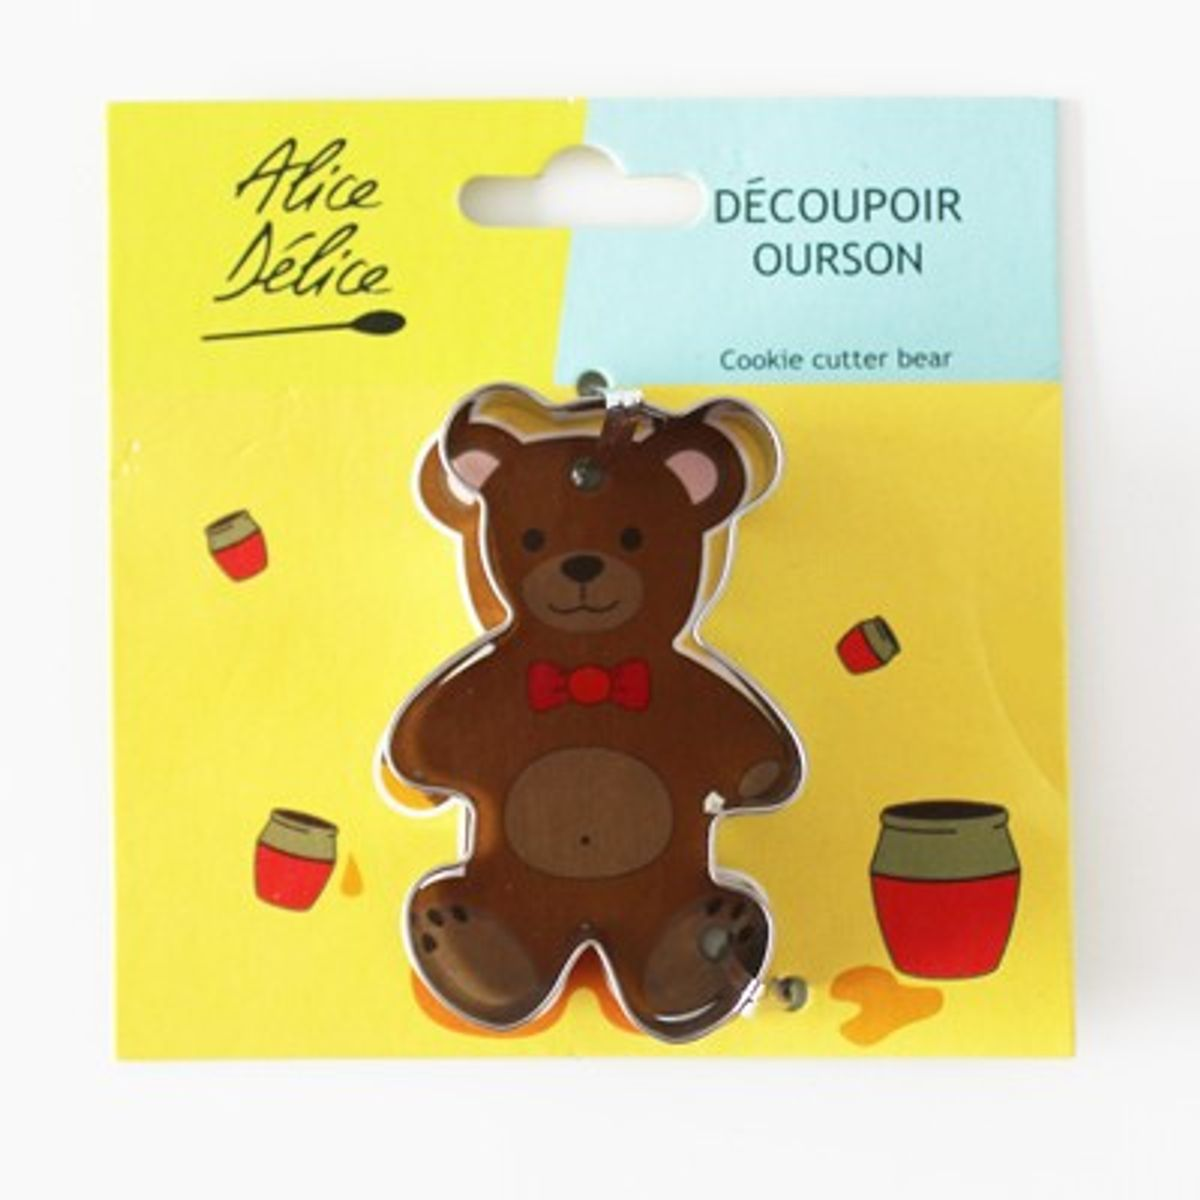 DECOUPOIR INOX OURSON - ALICE DELICE